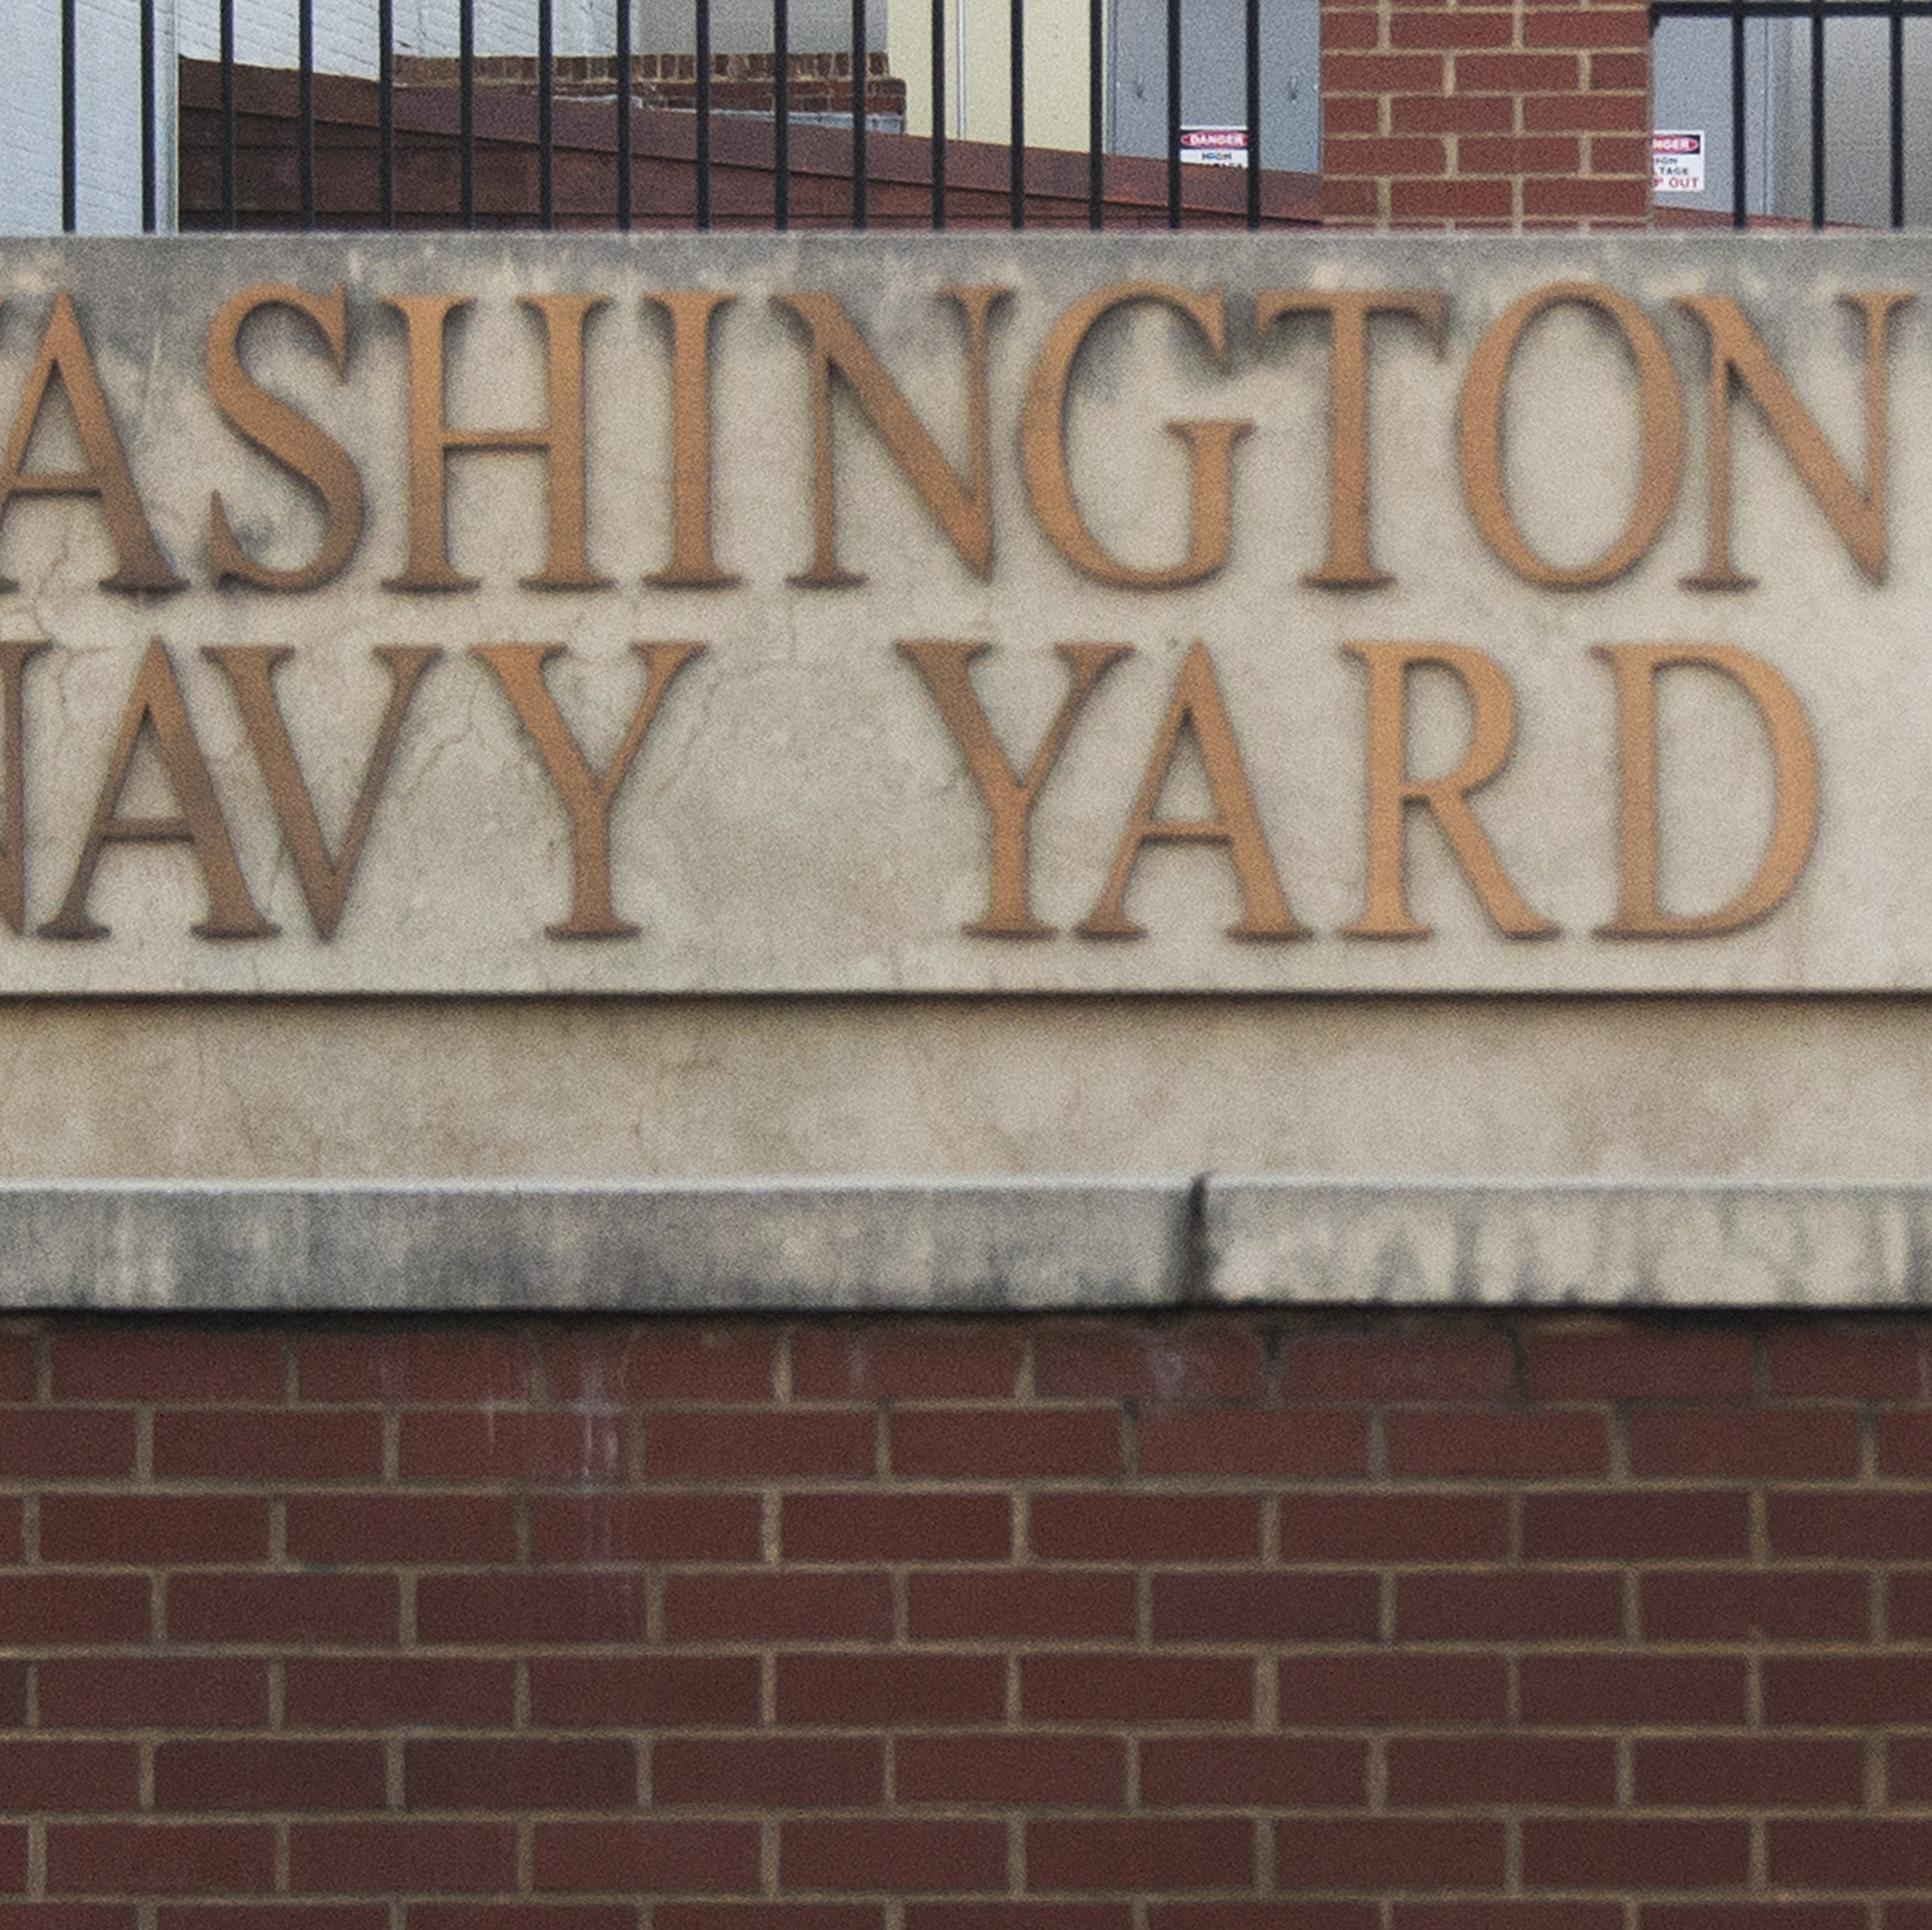 The front gate of the Washington Navy Yard.